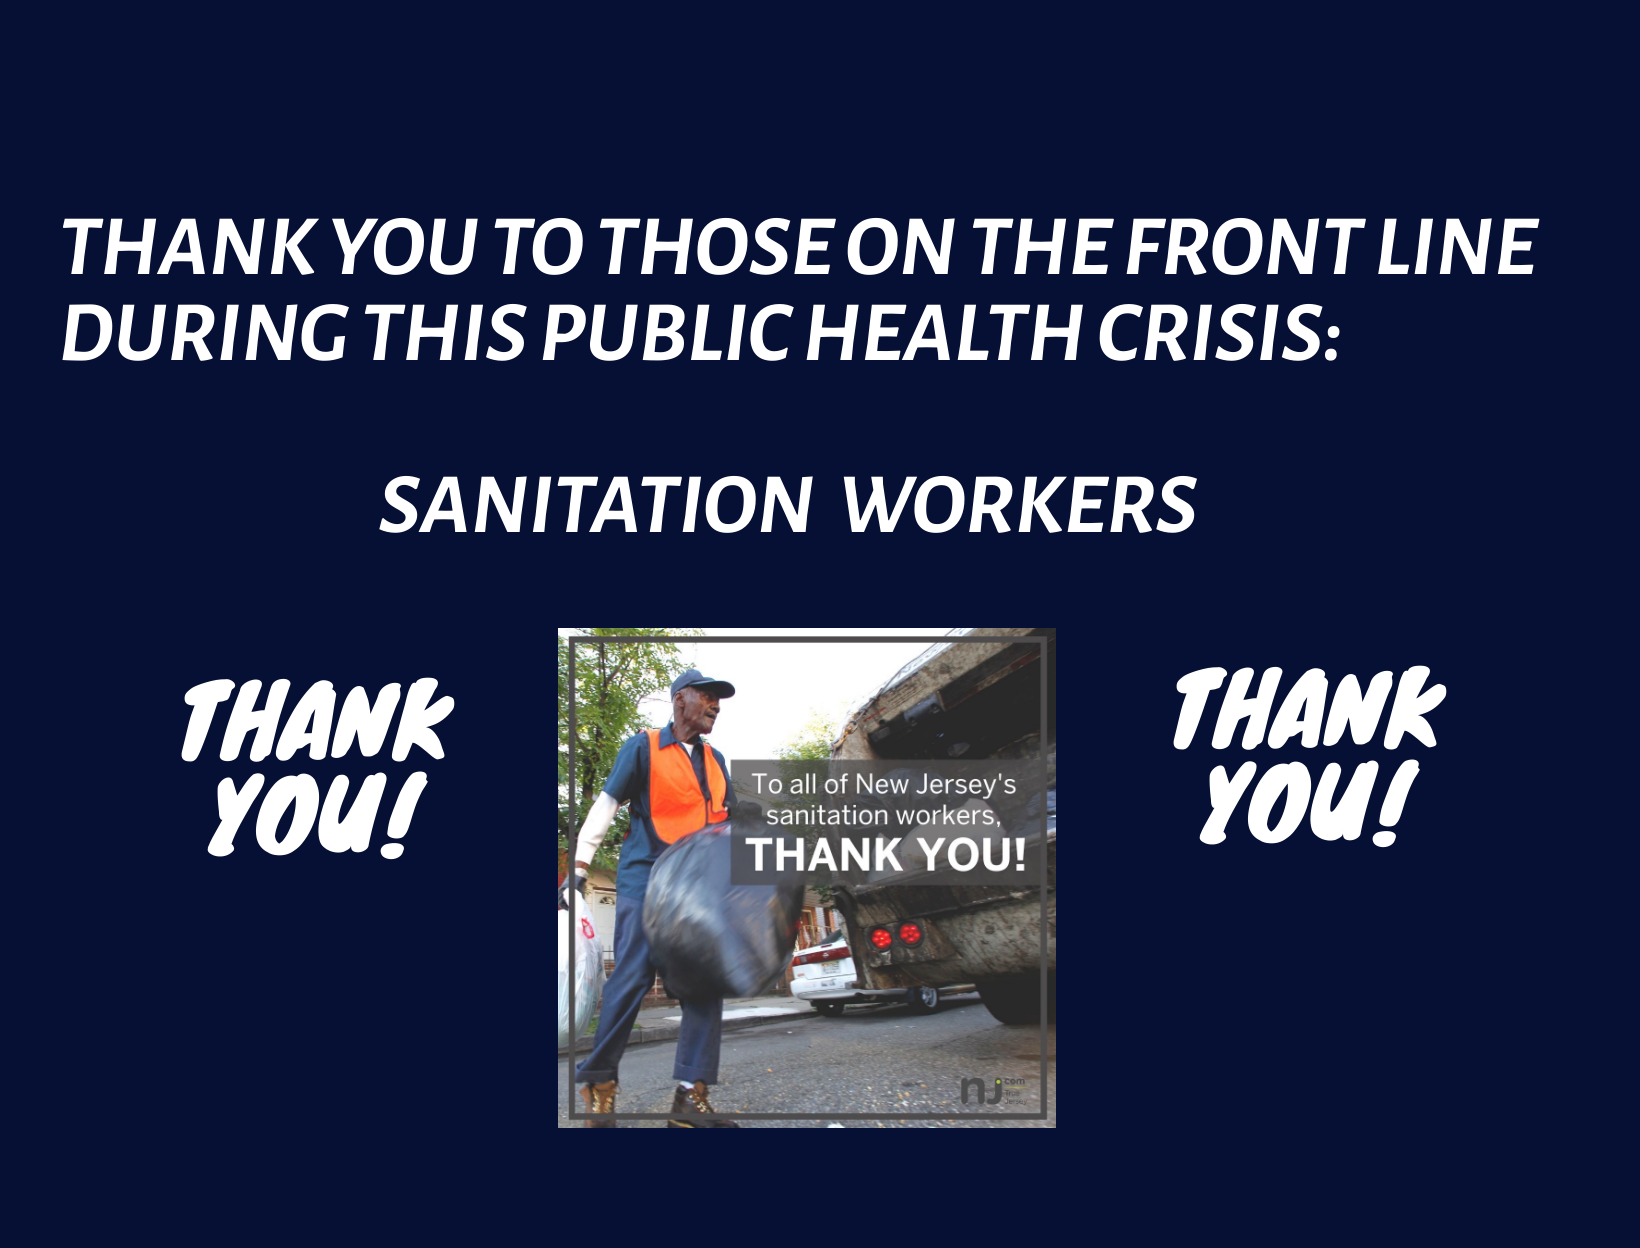 Thank you sanitation workers